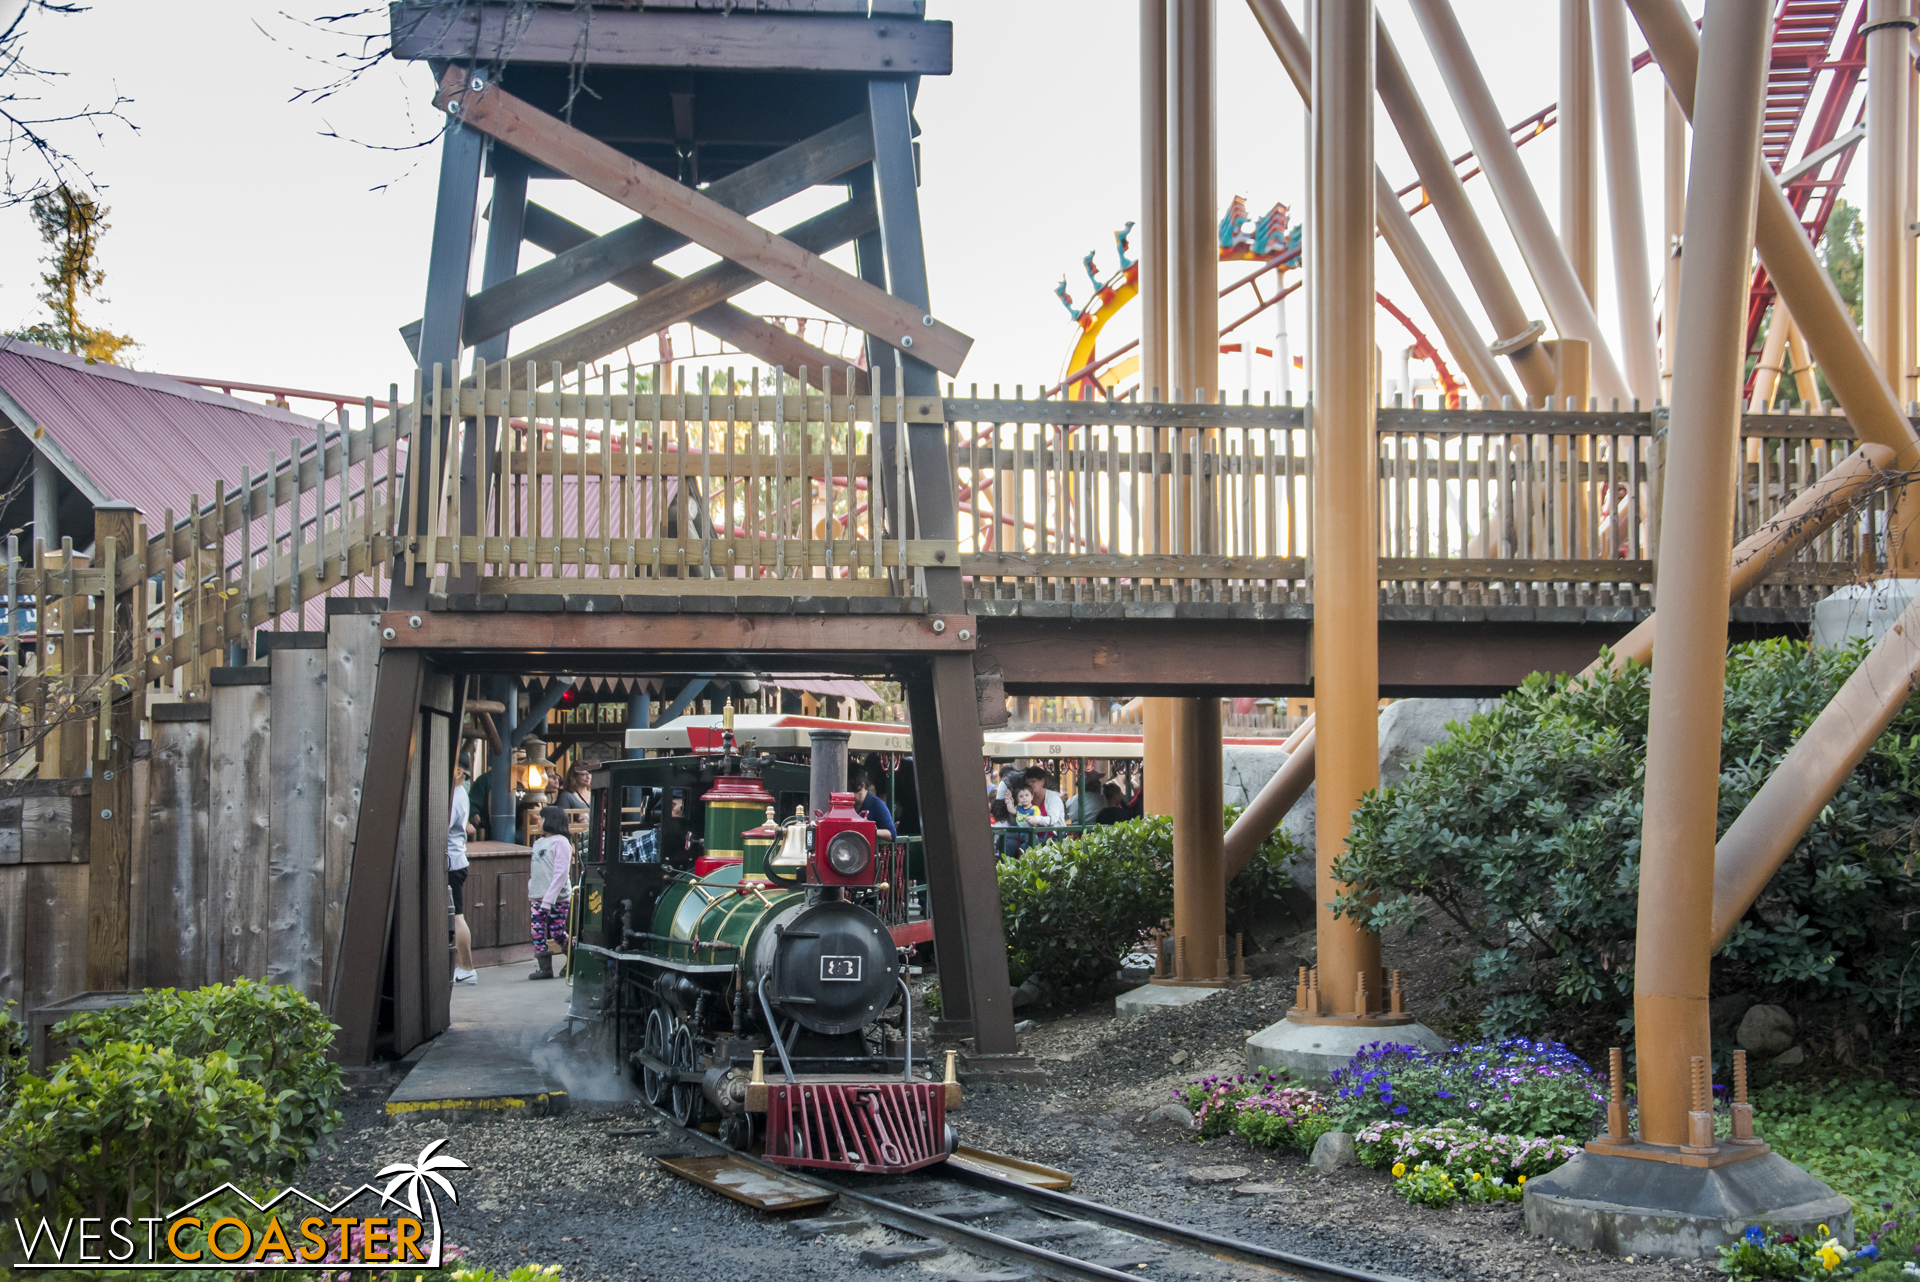 The Grand Sierra Railroad has received an overhaul for the Peanuts Celebration.